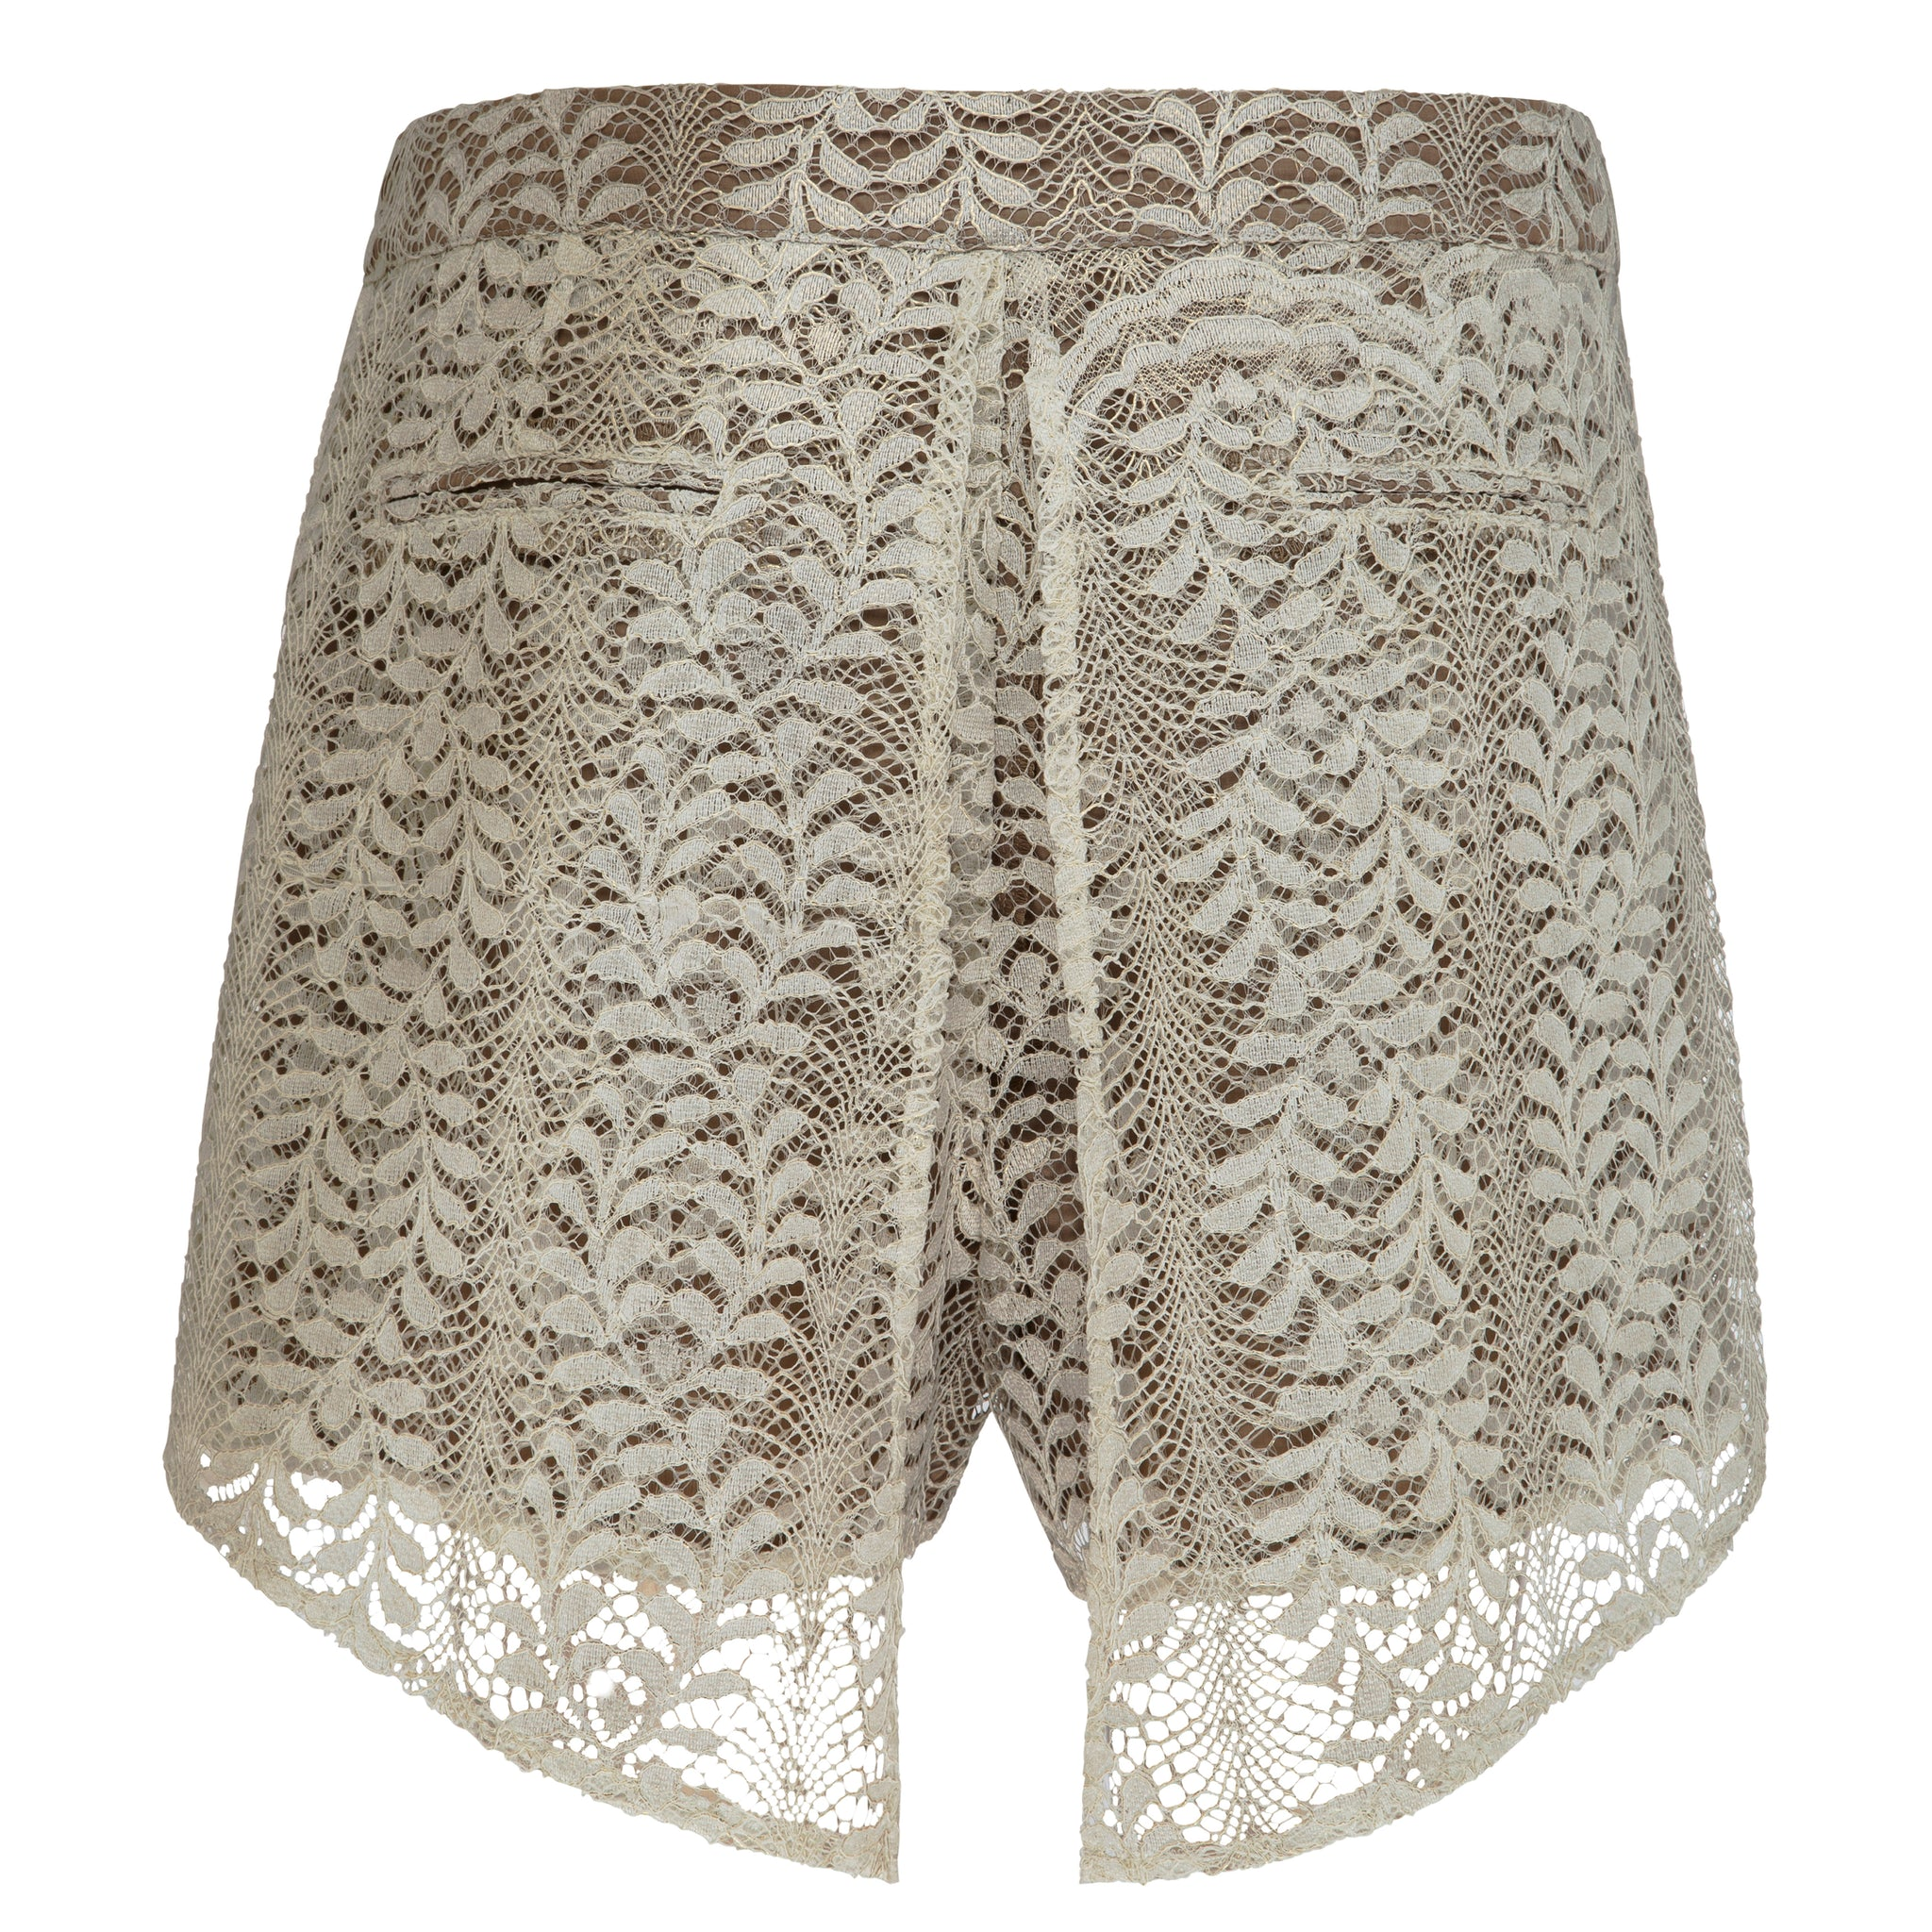 Atheia Short - Fine Lace with Gold Print